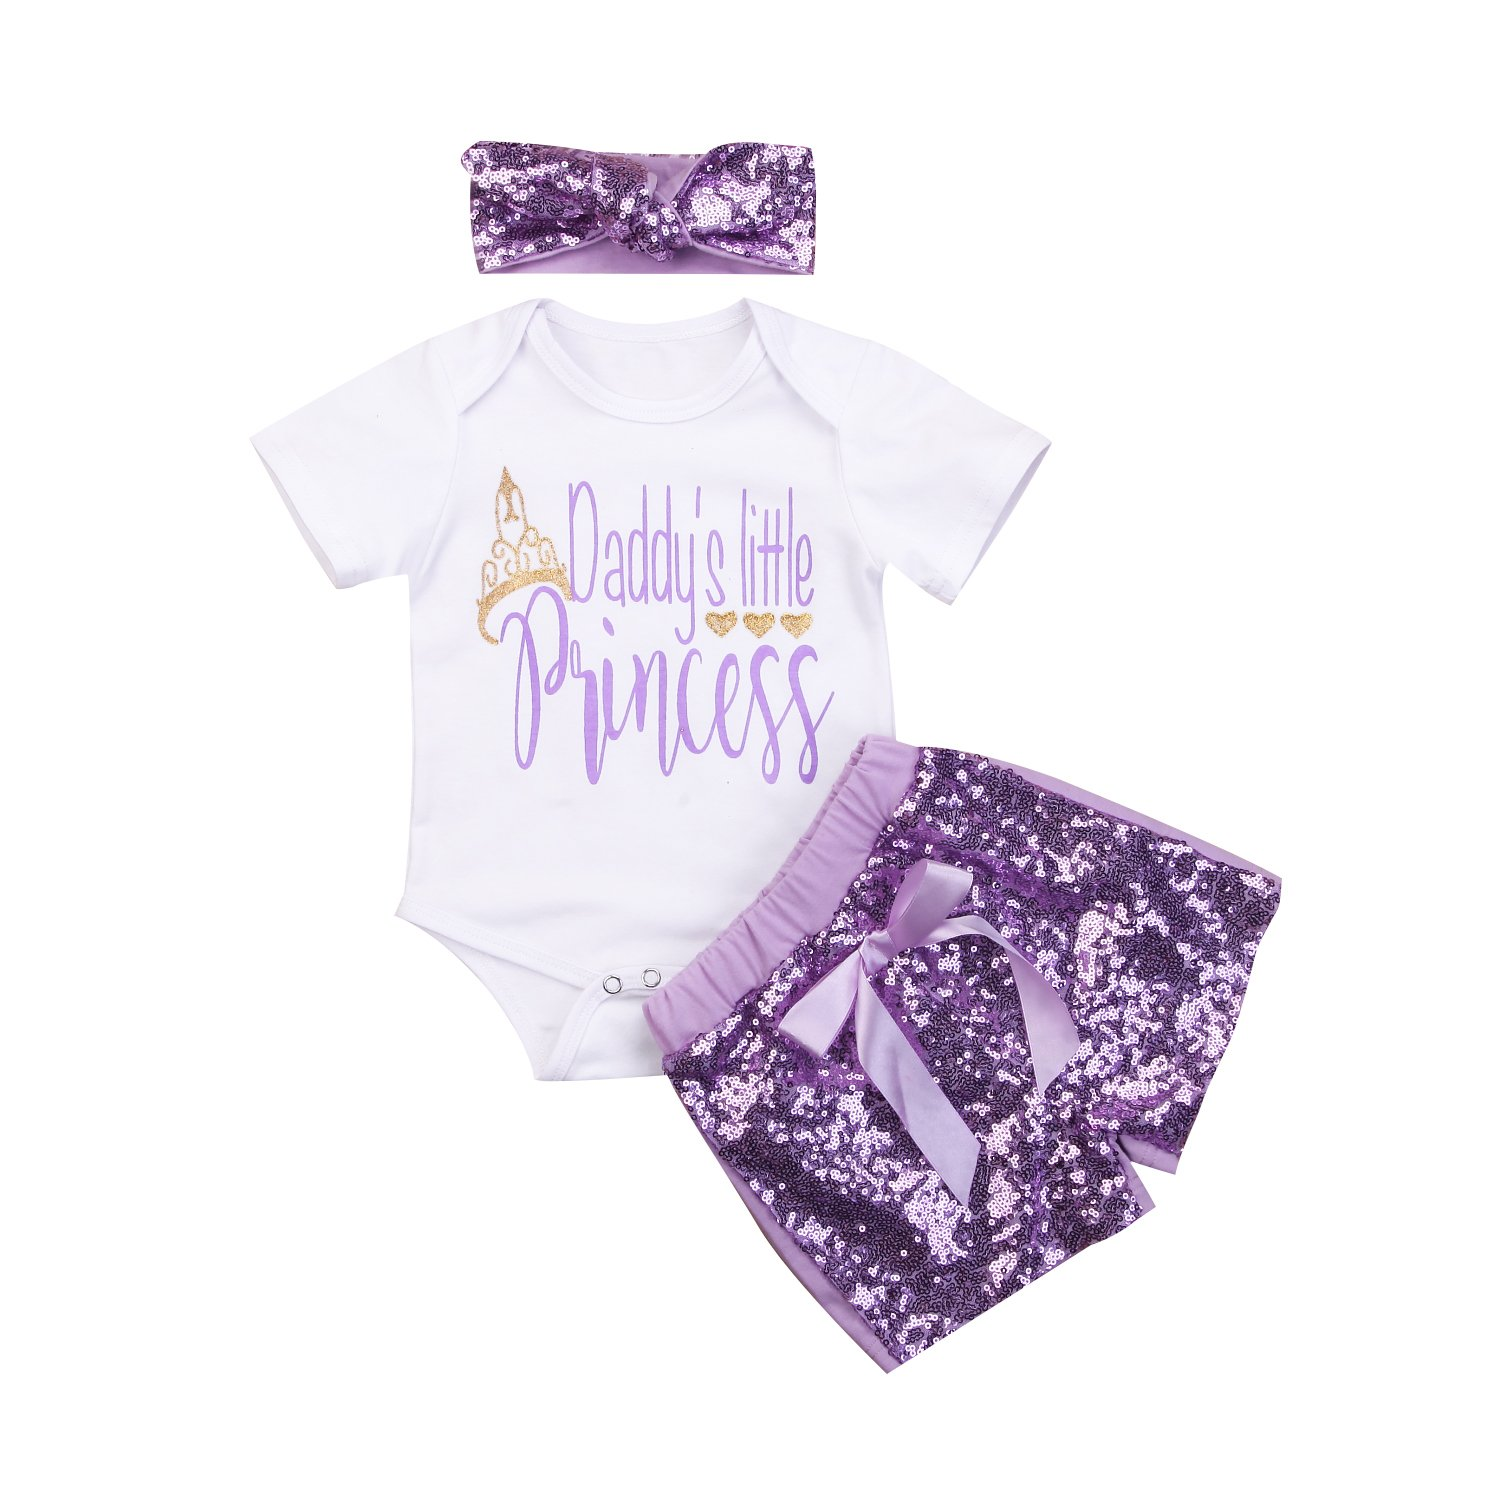 Baby Girls Romper+Sequins Shorts Set Daddy's Princess 3pcs Outfit Clothes (2-Day Shipping, 3-9 Months)